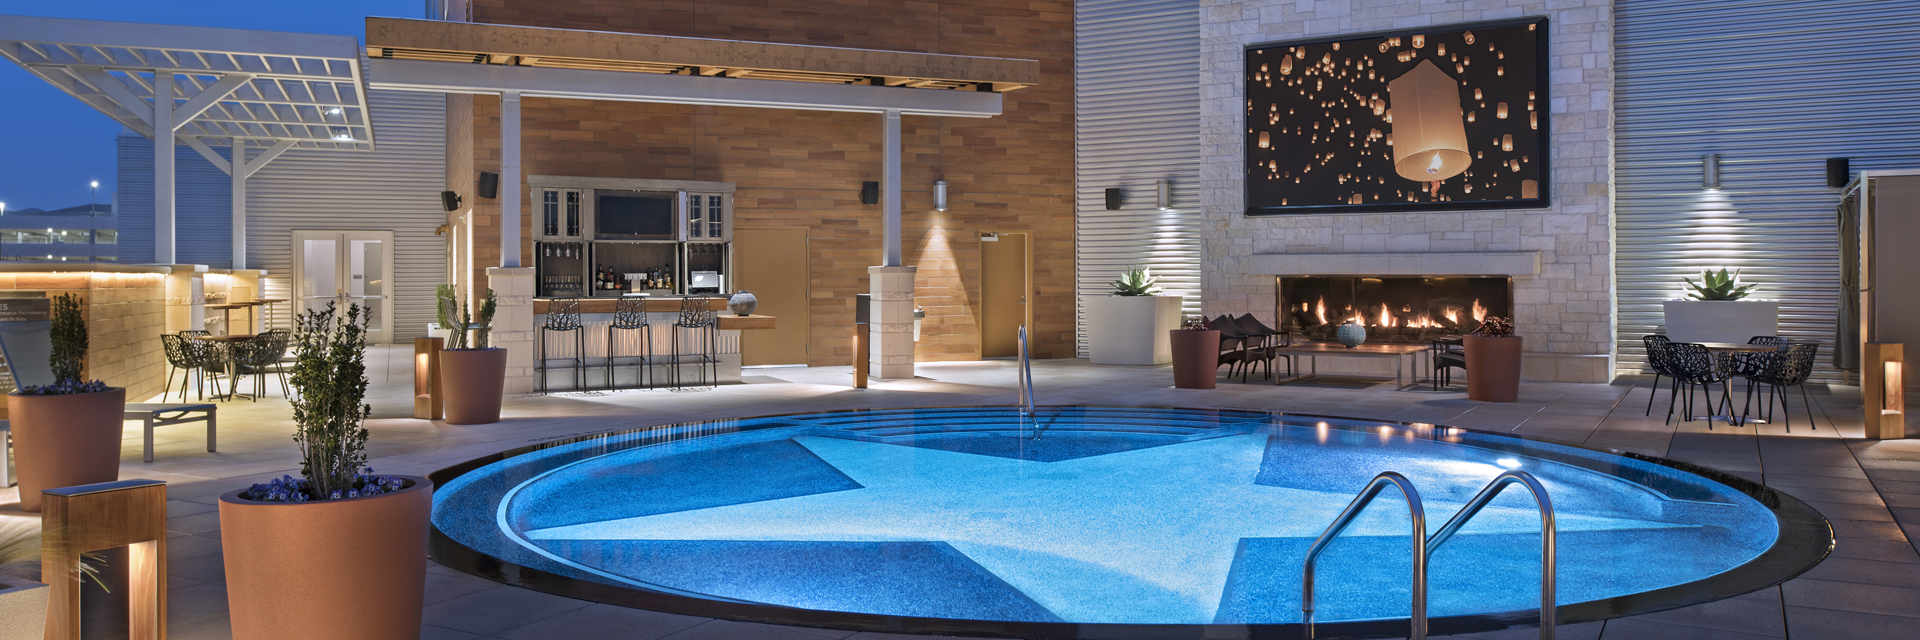 Nighttime view of the pool patio at Archer Hotel Austin — star-bottom splash pool with lounge seating, outside bar, fireplace and oversized TV on a limestone wall.